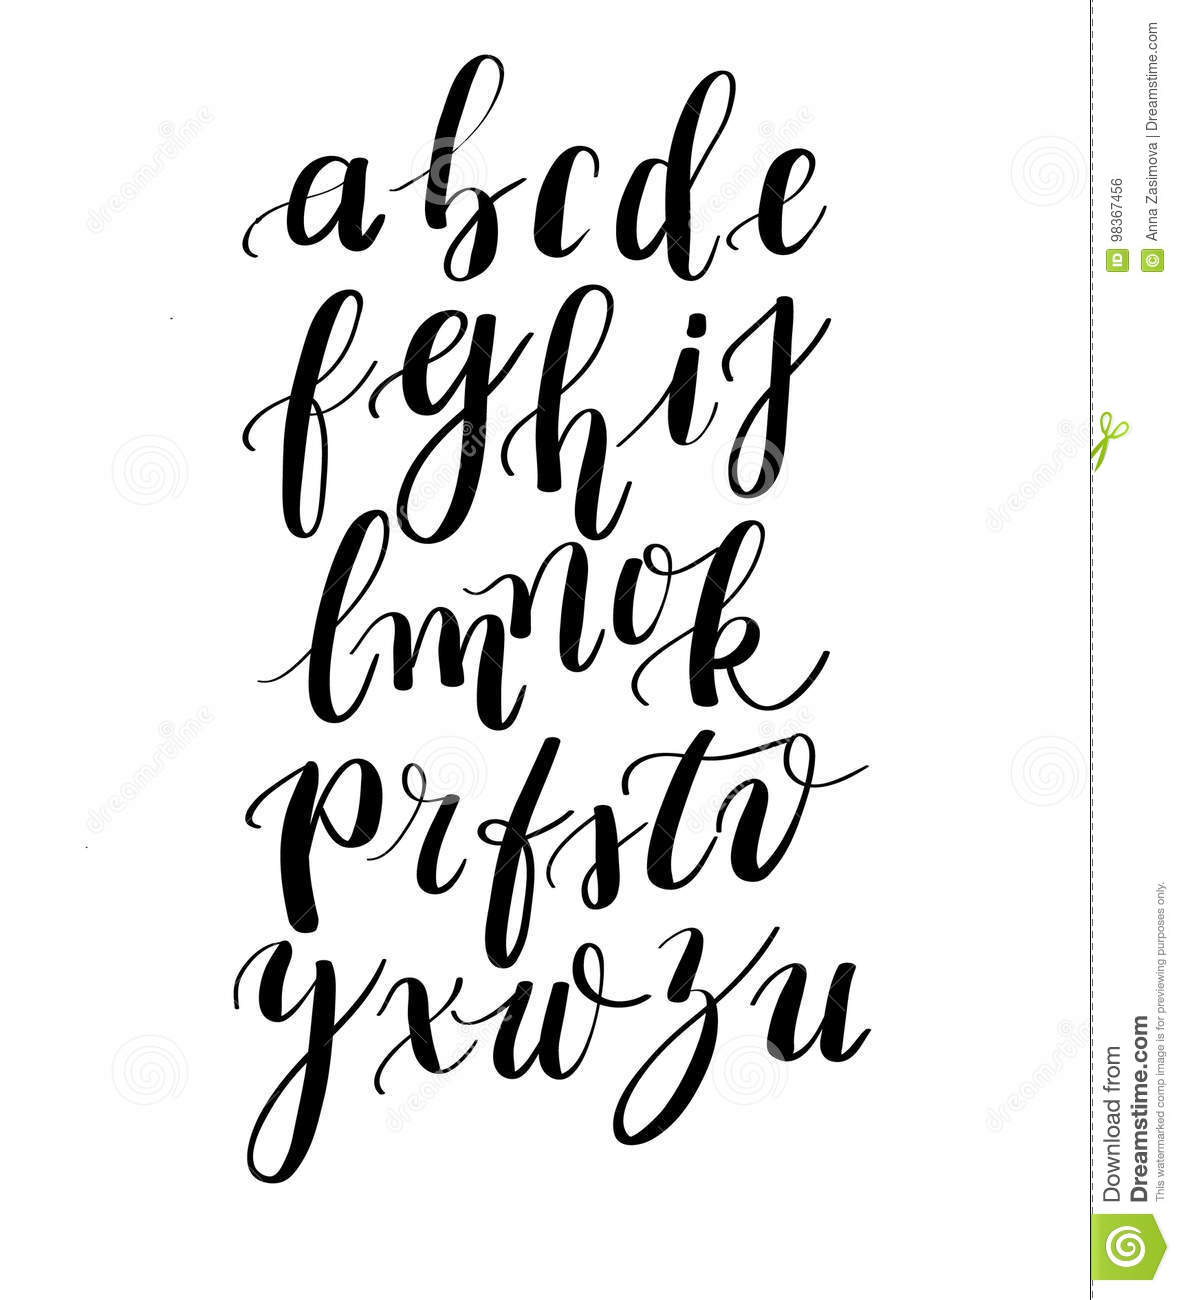 Calligraphy Hand Written Fonts Handwritten Brush Style